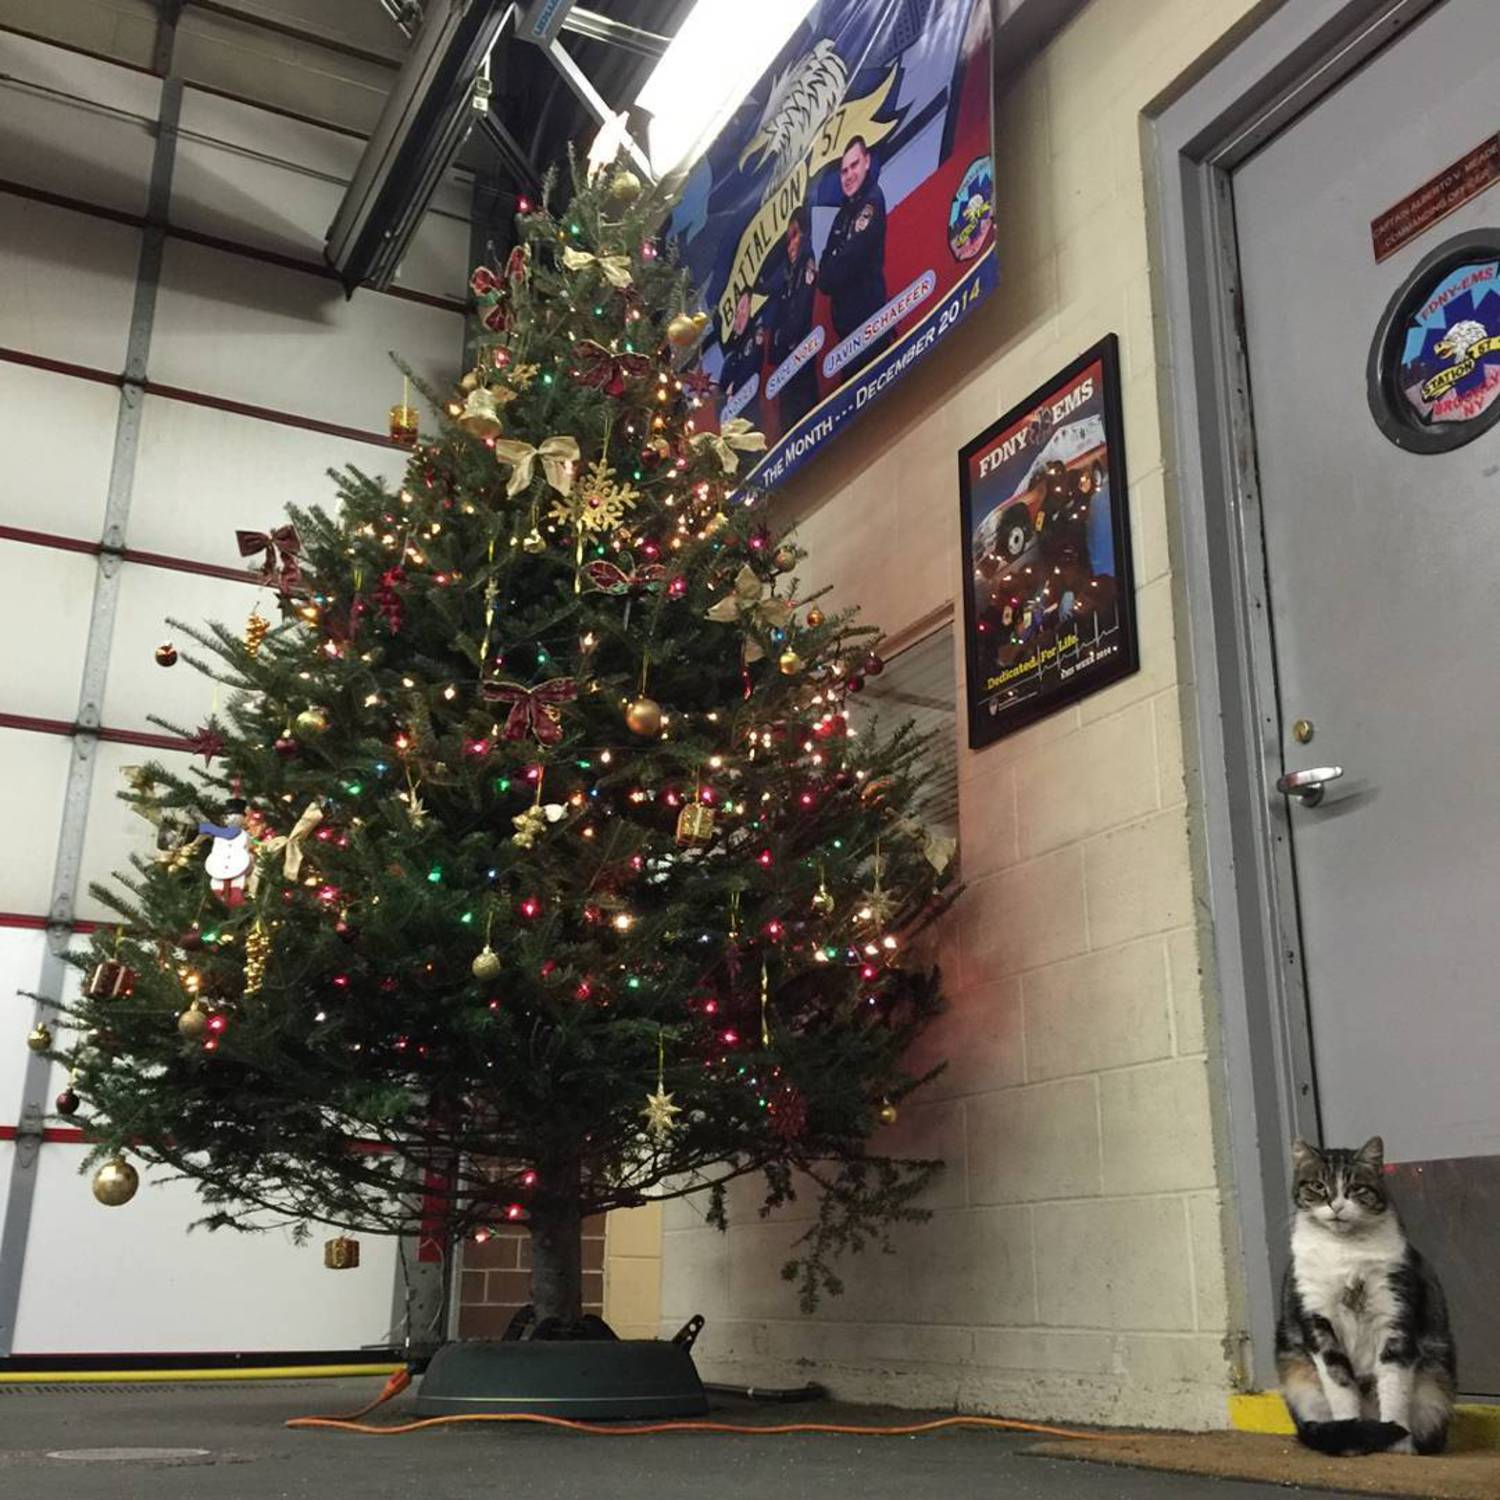 Today was our first annual Station 57 Toy Drive and the miniature humans got lots of presents but they left the best toys on the tree! For me. #busynightahead #liberatethetoys  #toysforkiller #christmastree #thiswillbearegulartreeintheam  #toydrive #station57 #ornamentfree57 #cats #catsandchristmastrees #cat #catsofinstagram #tabby #tabbiesofinstagram #fdny #fdnyems #tabbycats #stationcat #workingcats #catsatwork